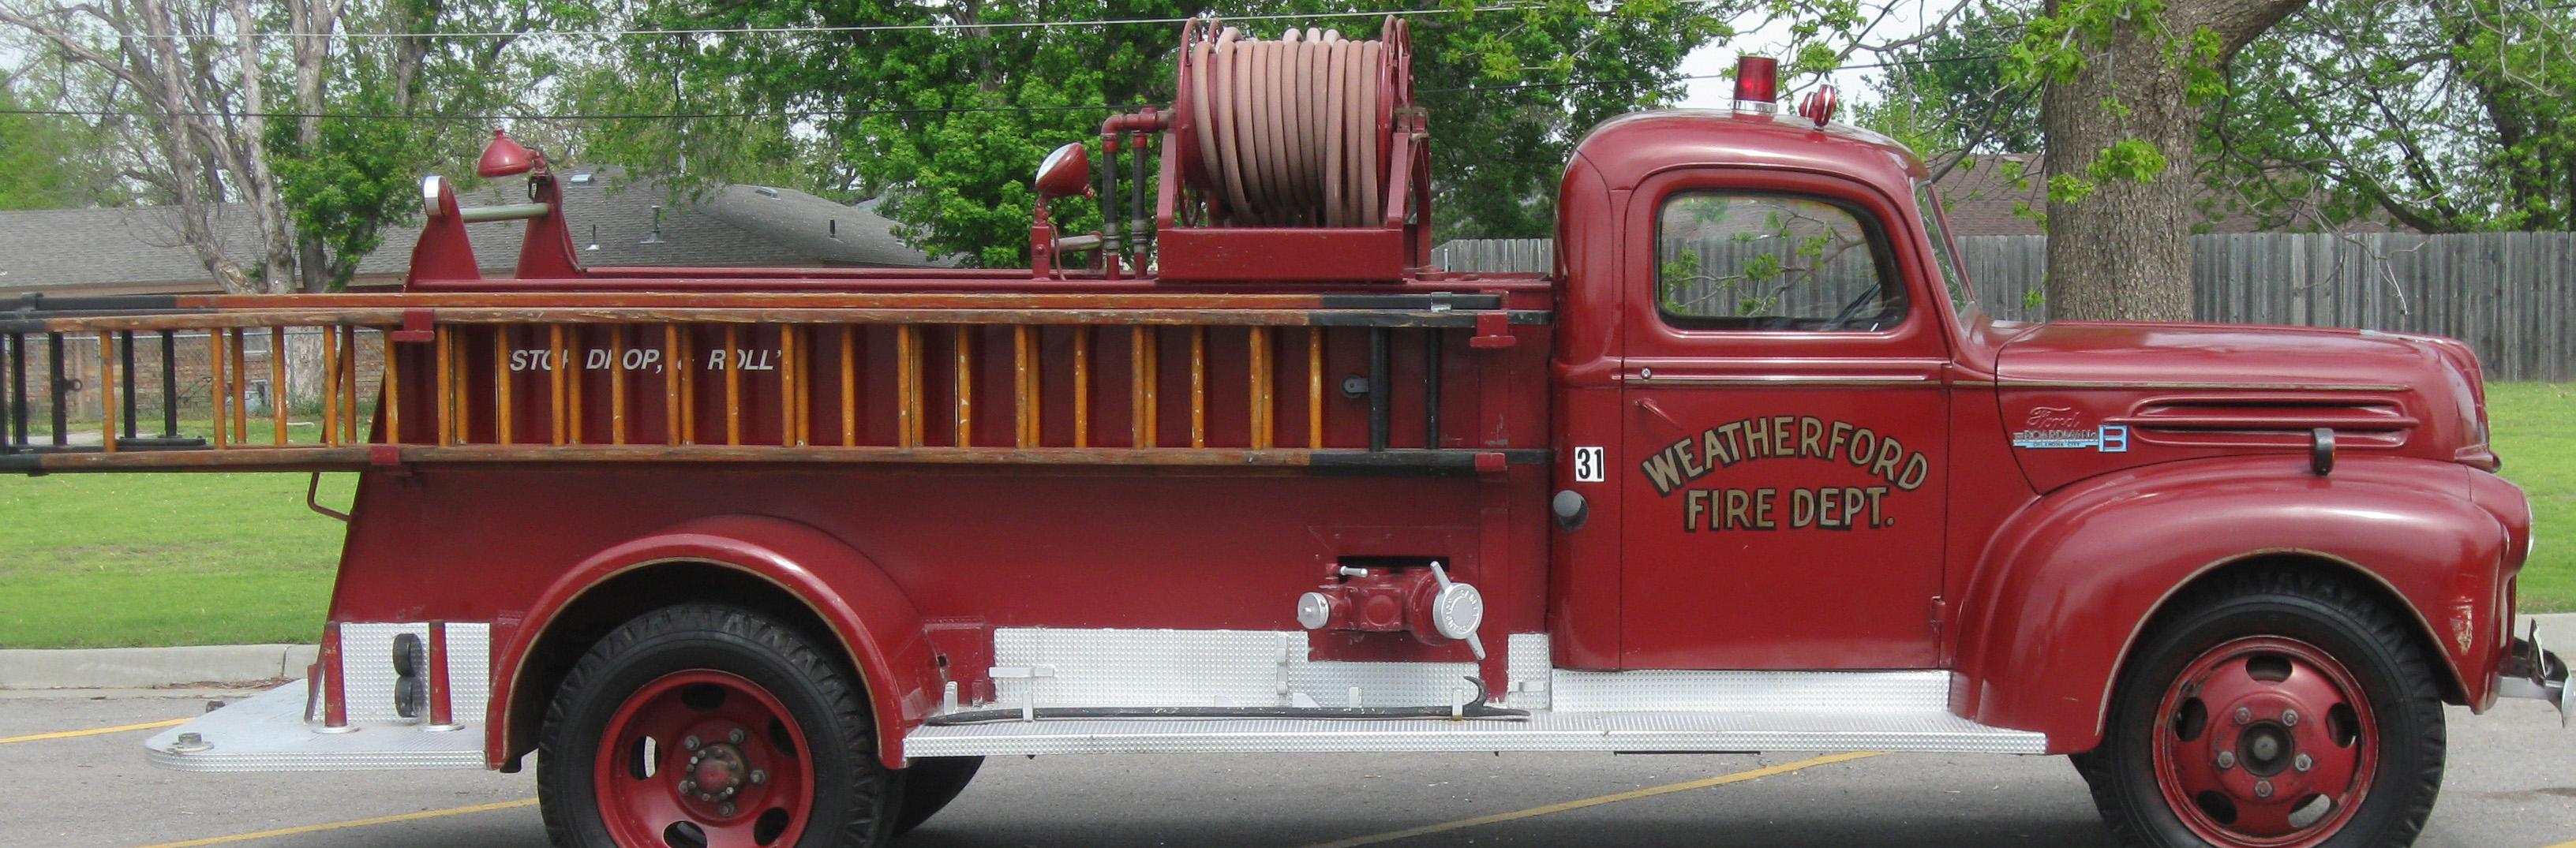 picture of old red fire truck